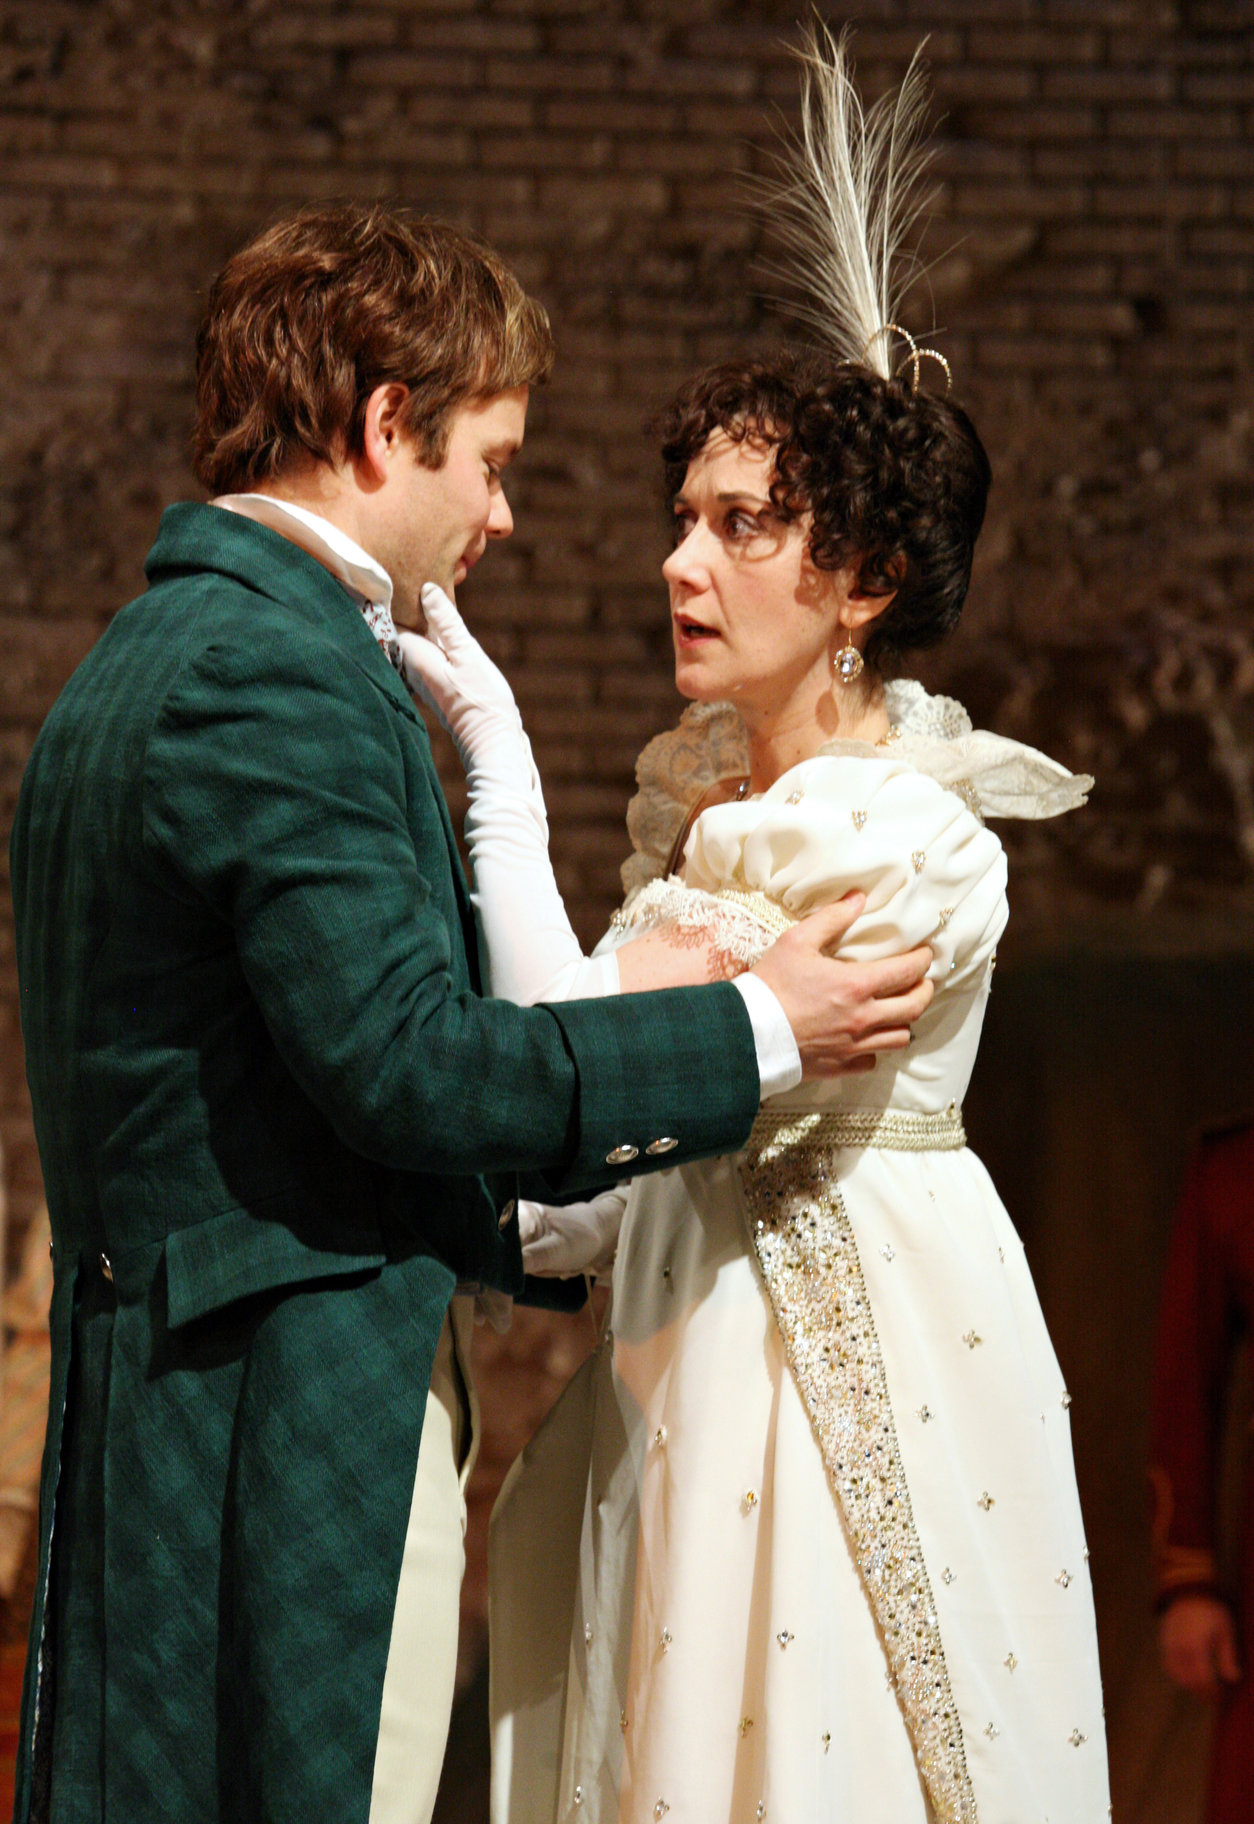 Sebastian in a green suit and Olivia in a wedding dress embrace in the 2009 production of Twelfth Night.